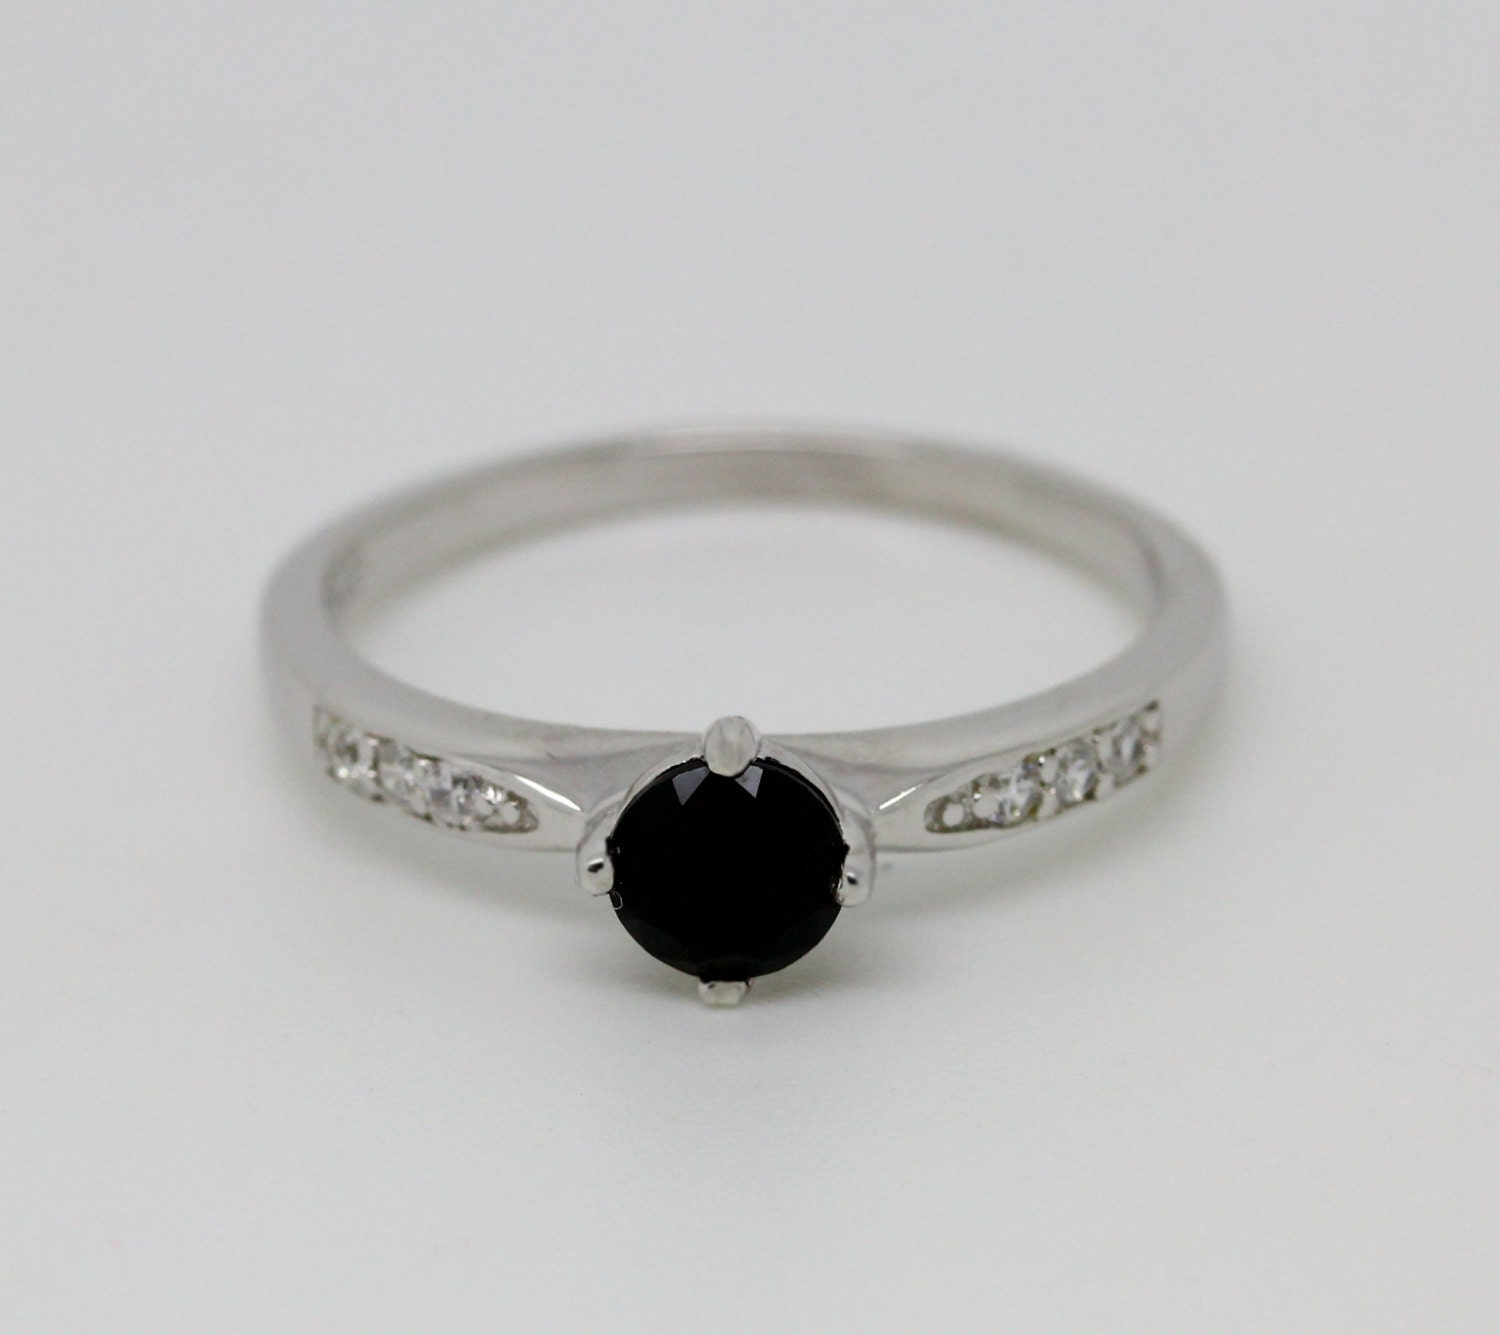 Genuine black diamond Solitaire engagement ring available in